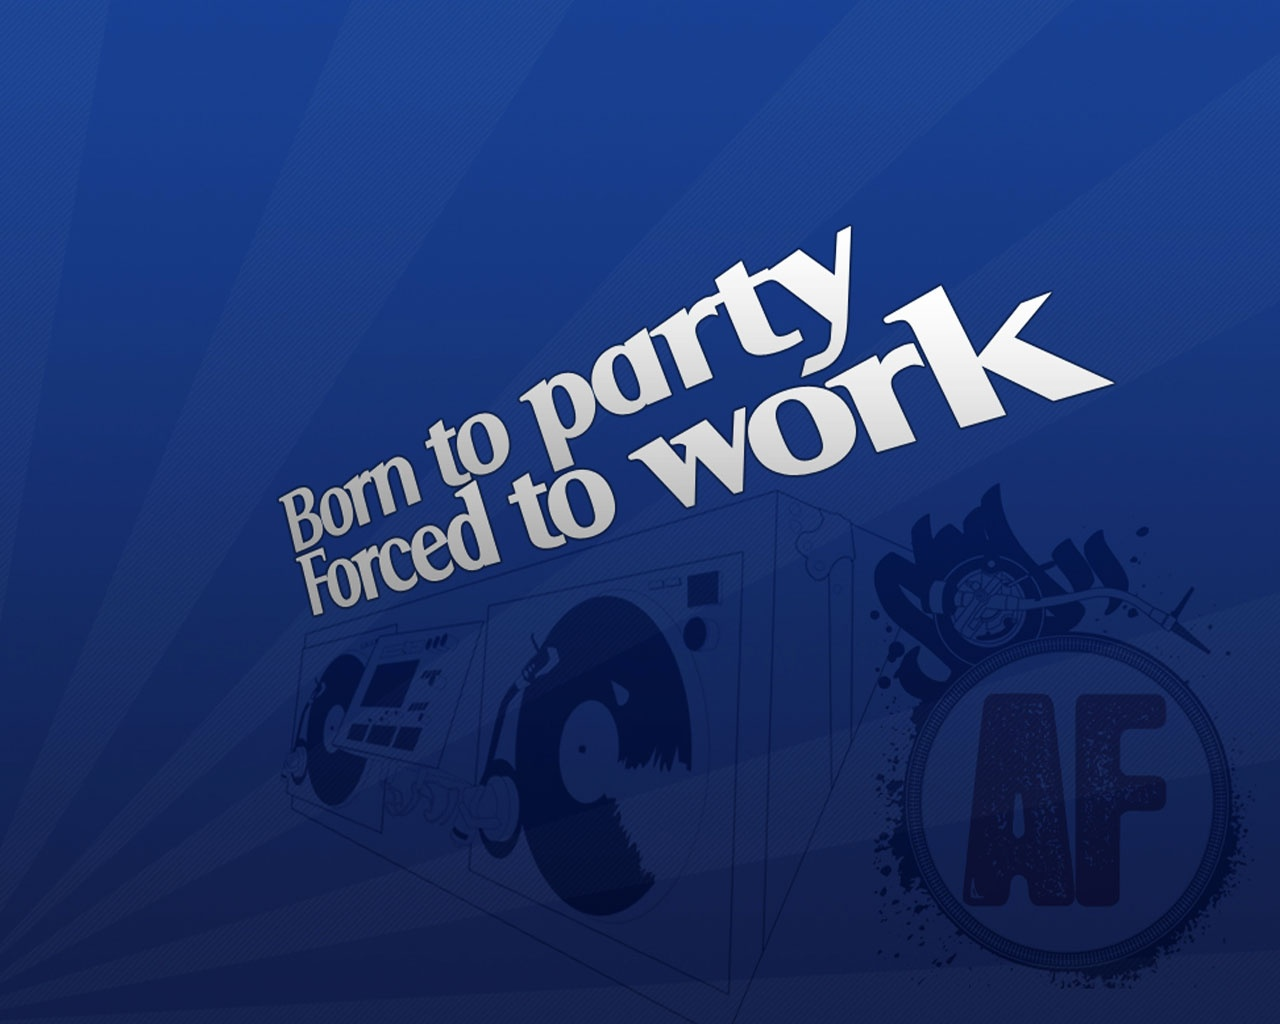 Born To Party Forced To Work wallpaper music and dance wallpapers 1280x1024